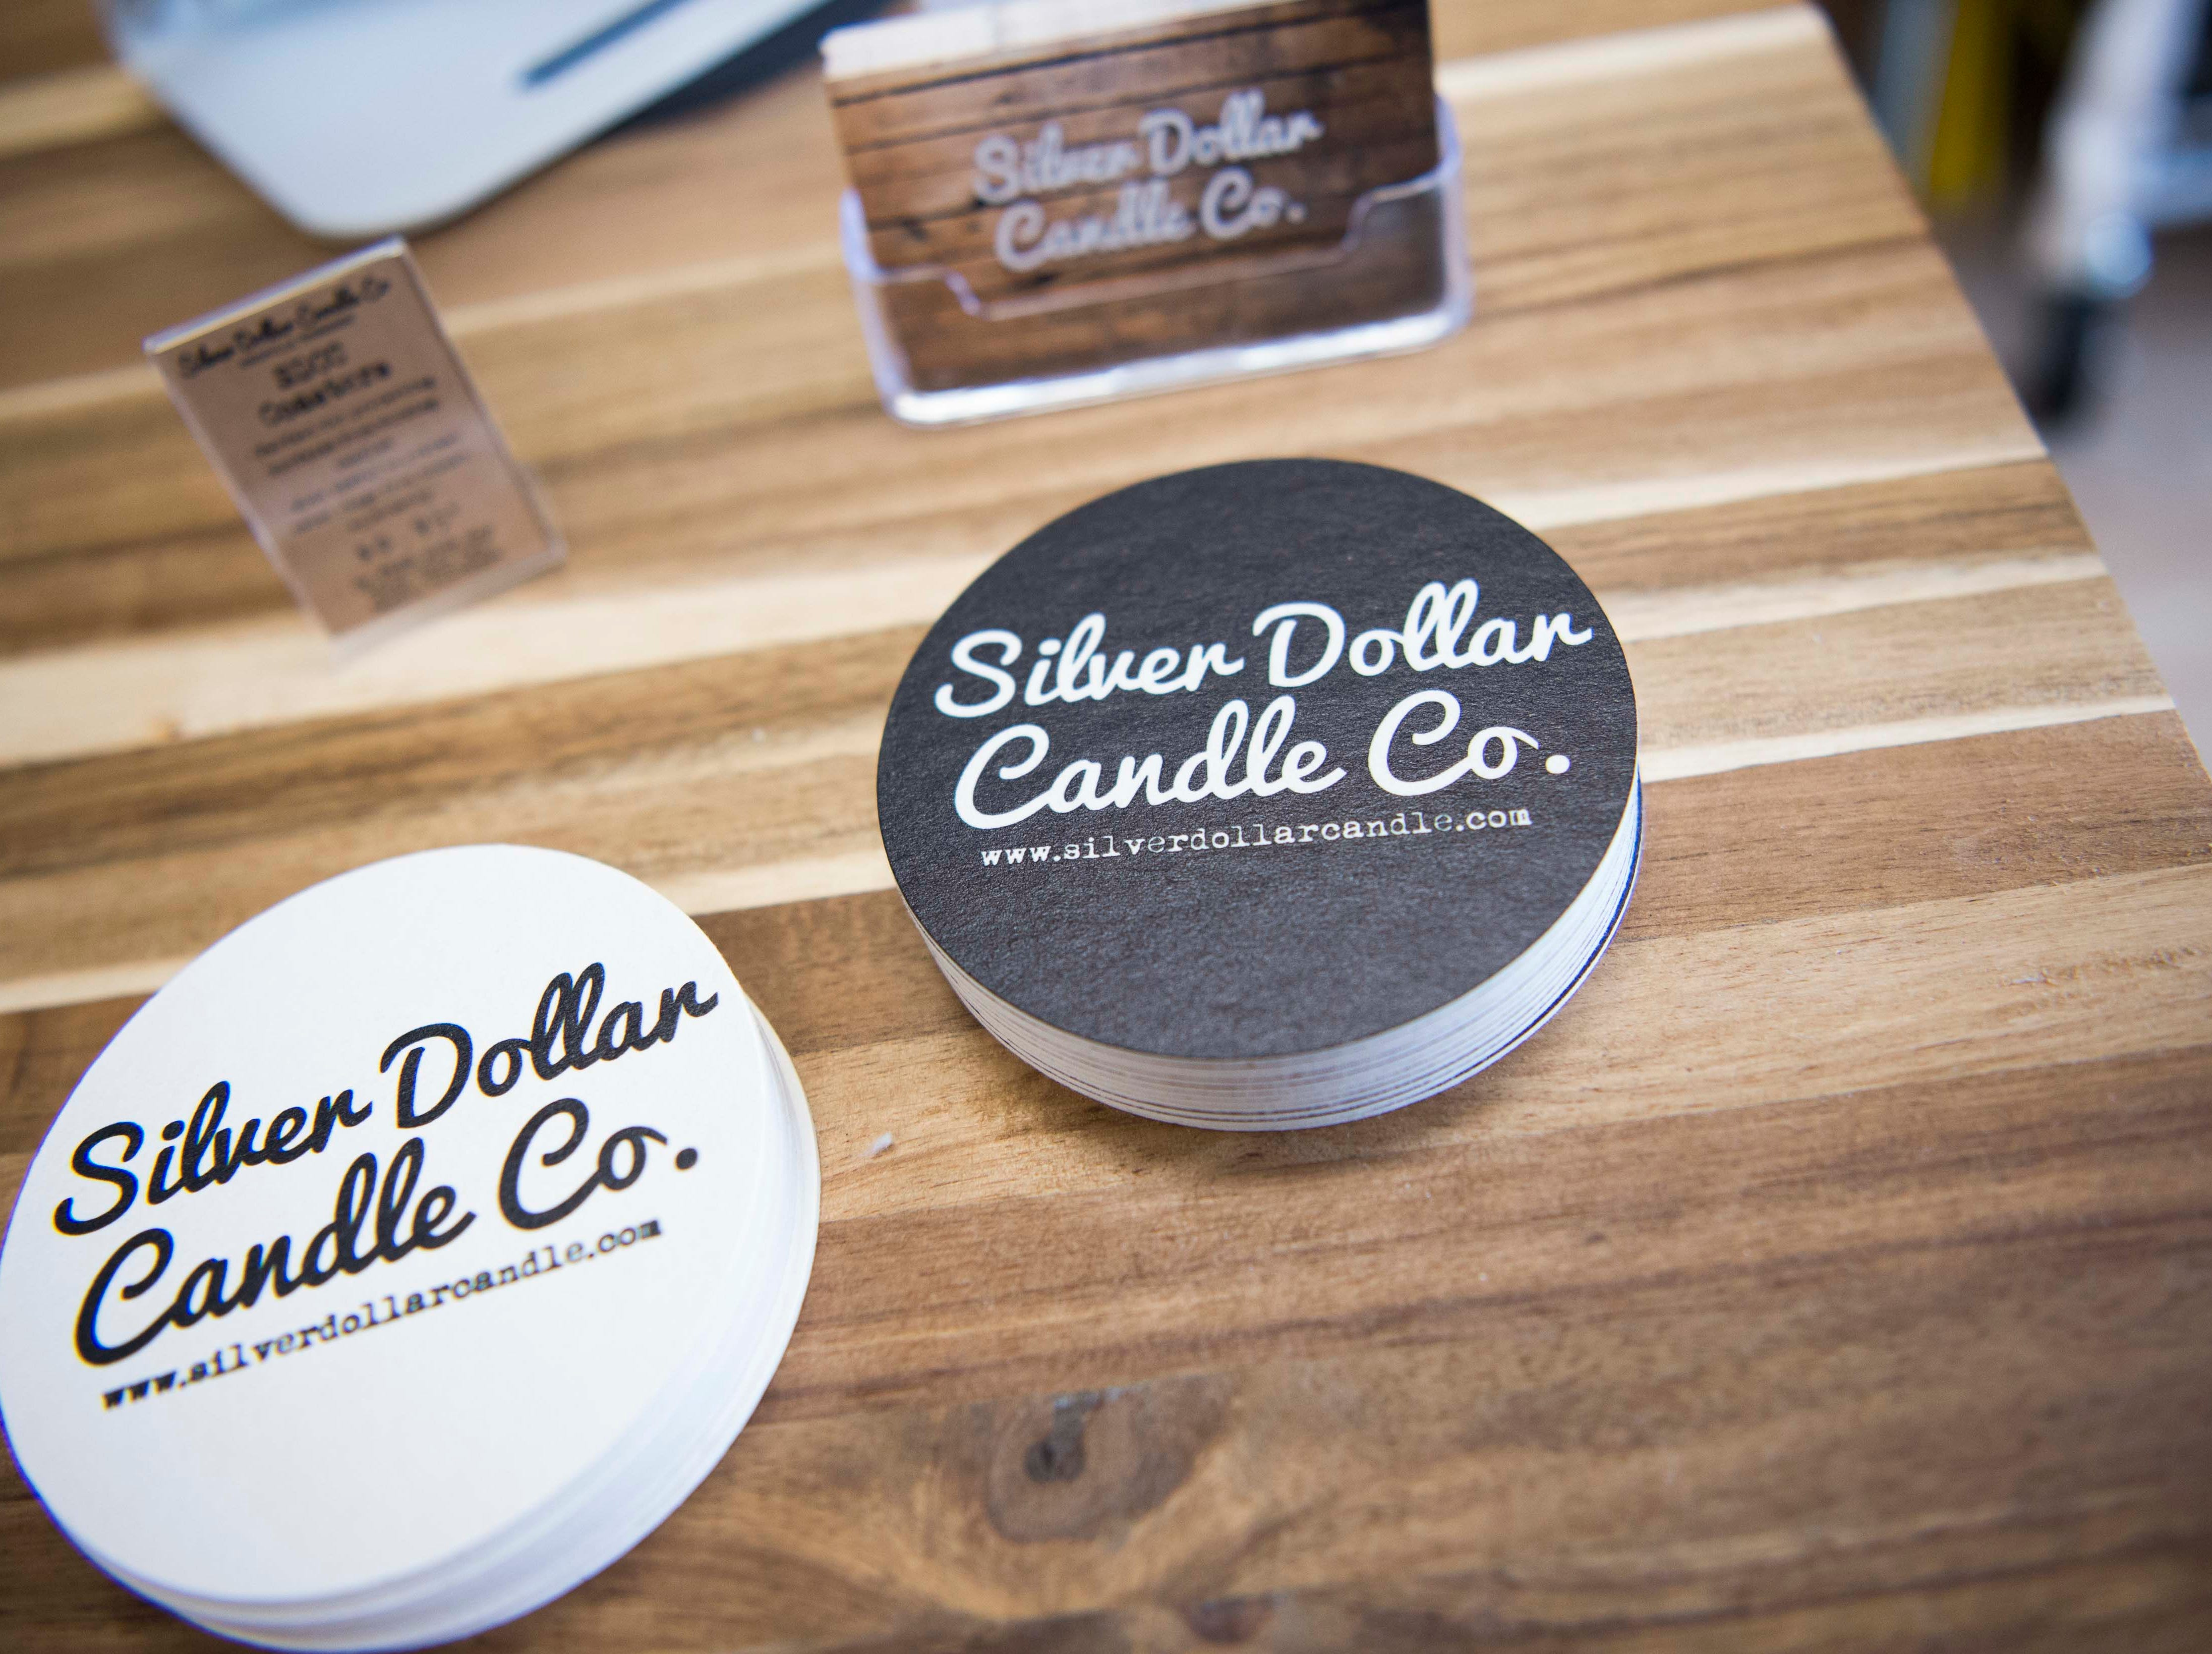 Branded coasters are seen at Silver Dollar Candle Co. in Knoxville Tuesday, March 26, 2019. Silver Dollar Candle offers unique soy candles in a variety of scents, and is expanding to offer a make-your-own candle experience in their store.